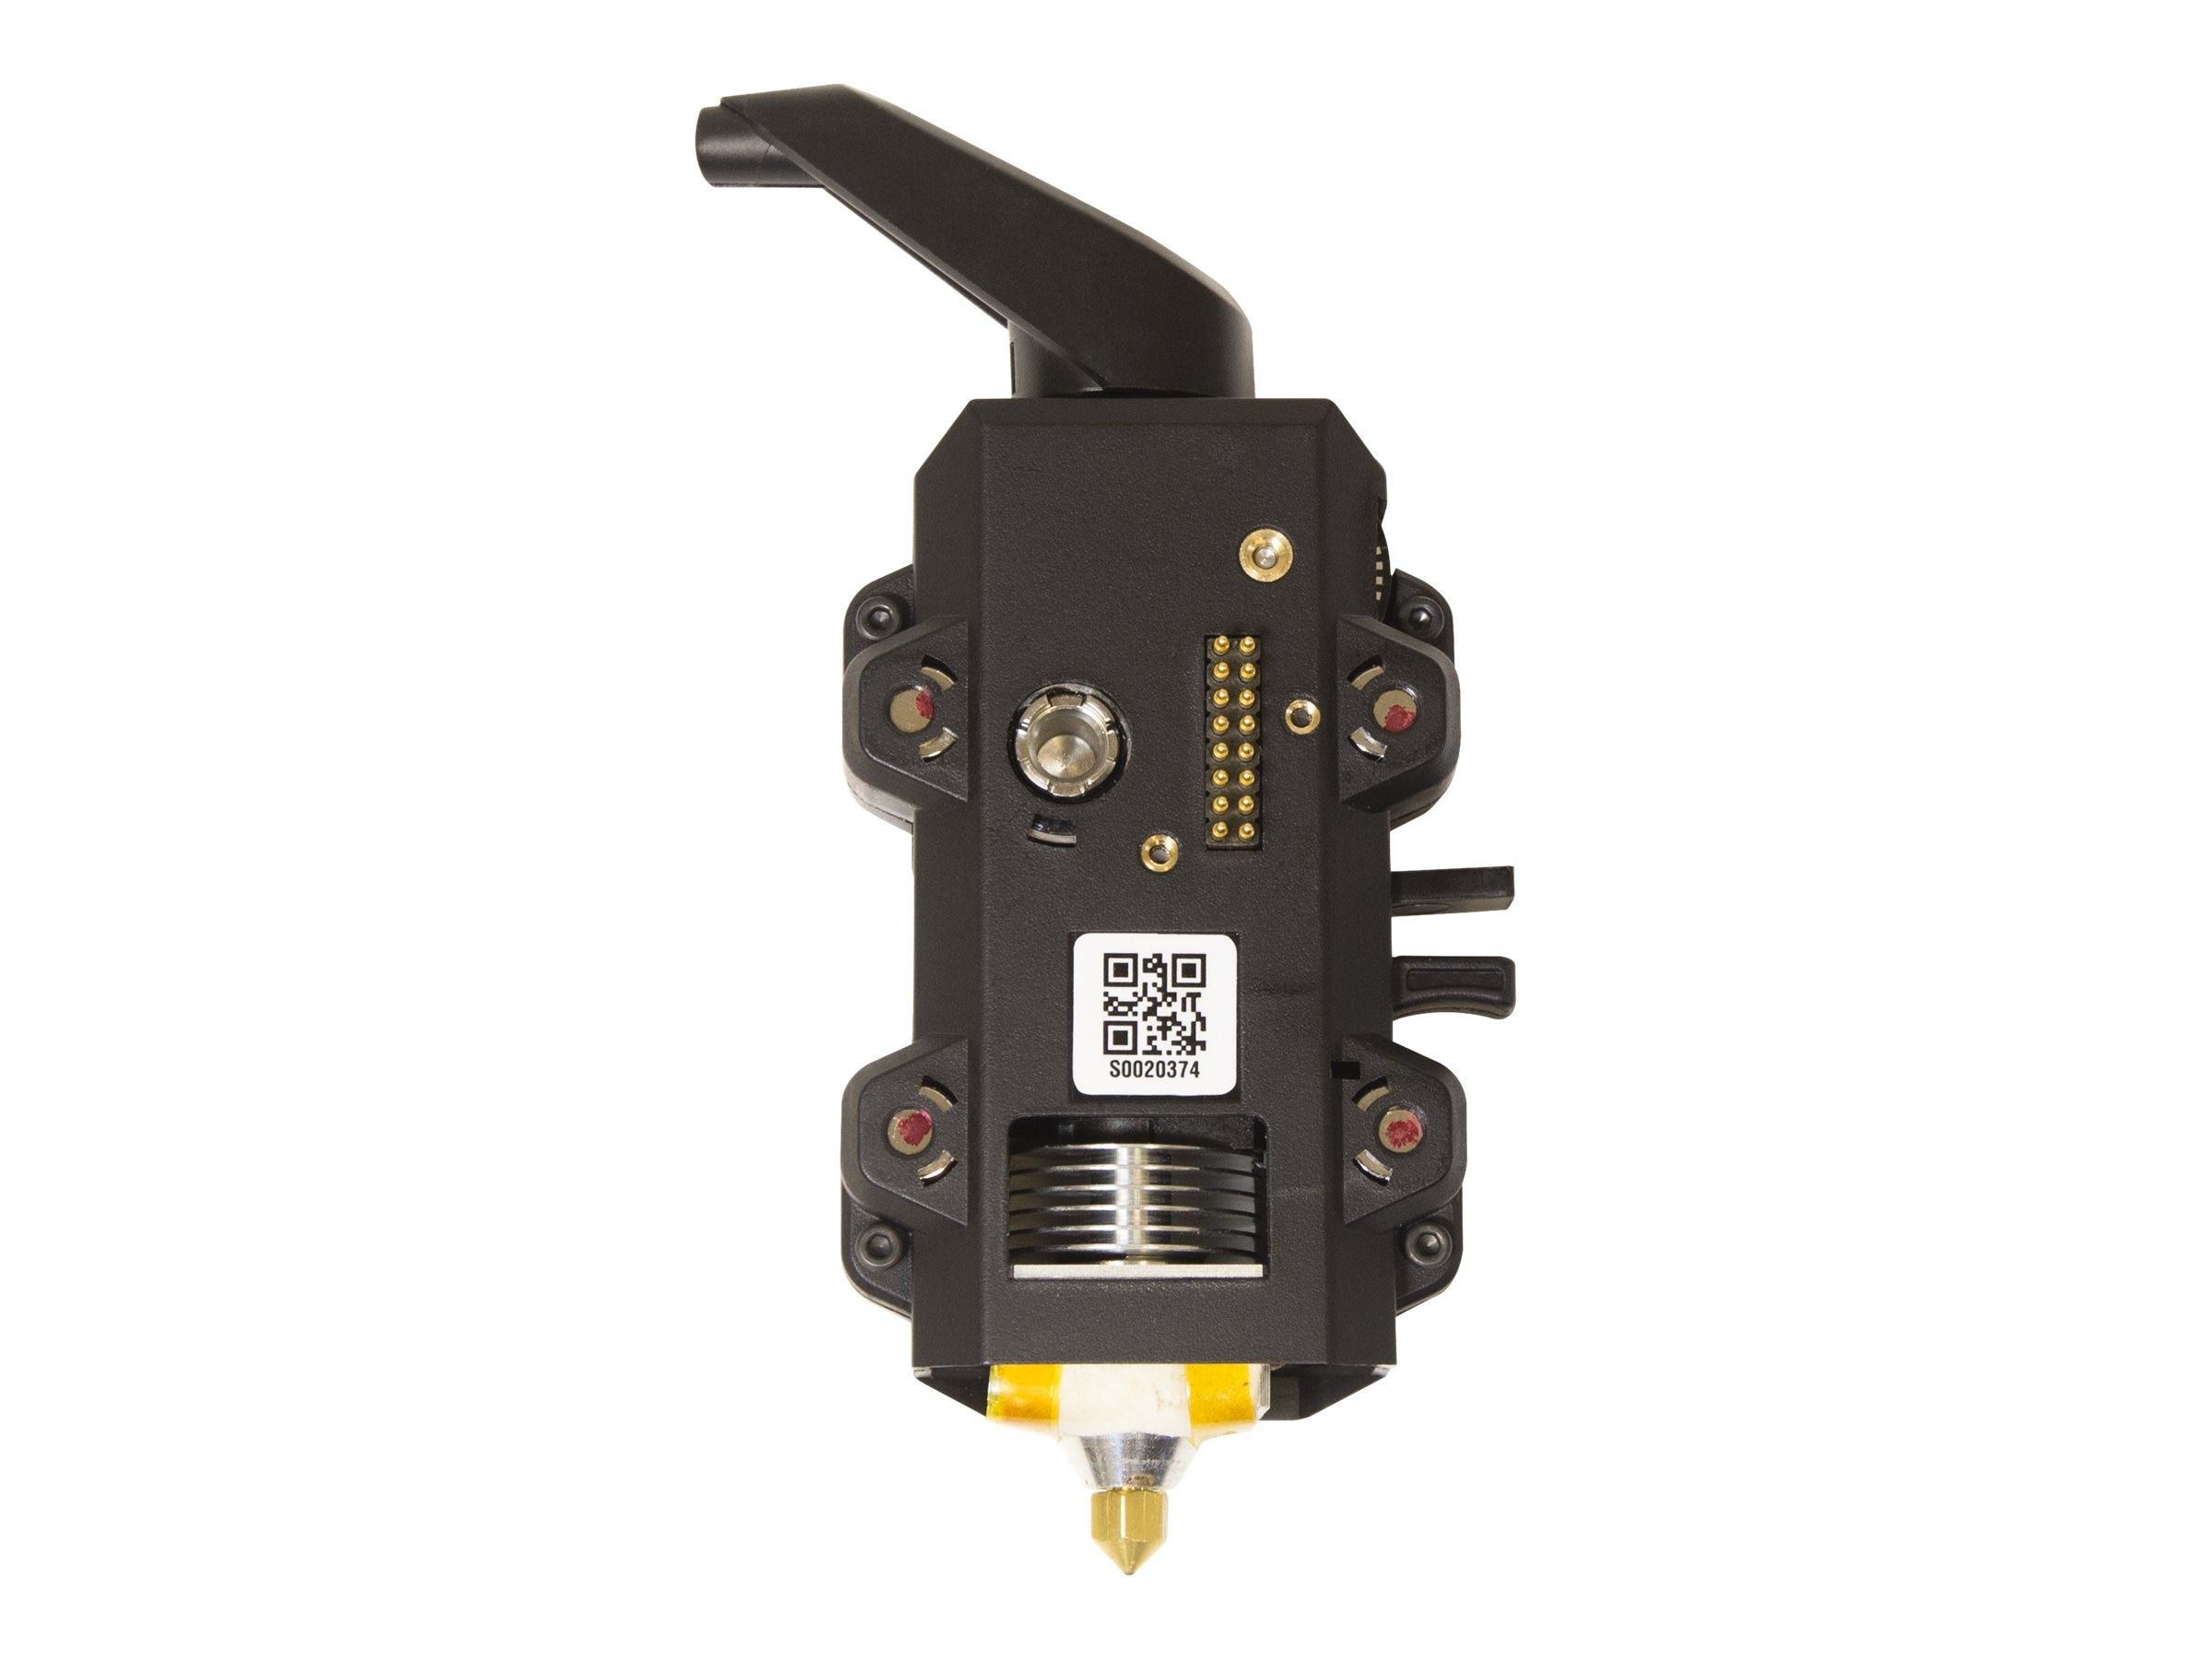 MakerBot Smart Extruder Rep Z18, MP07376